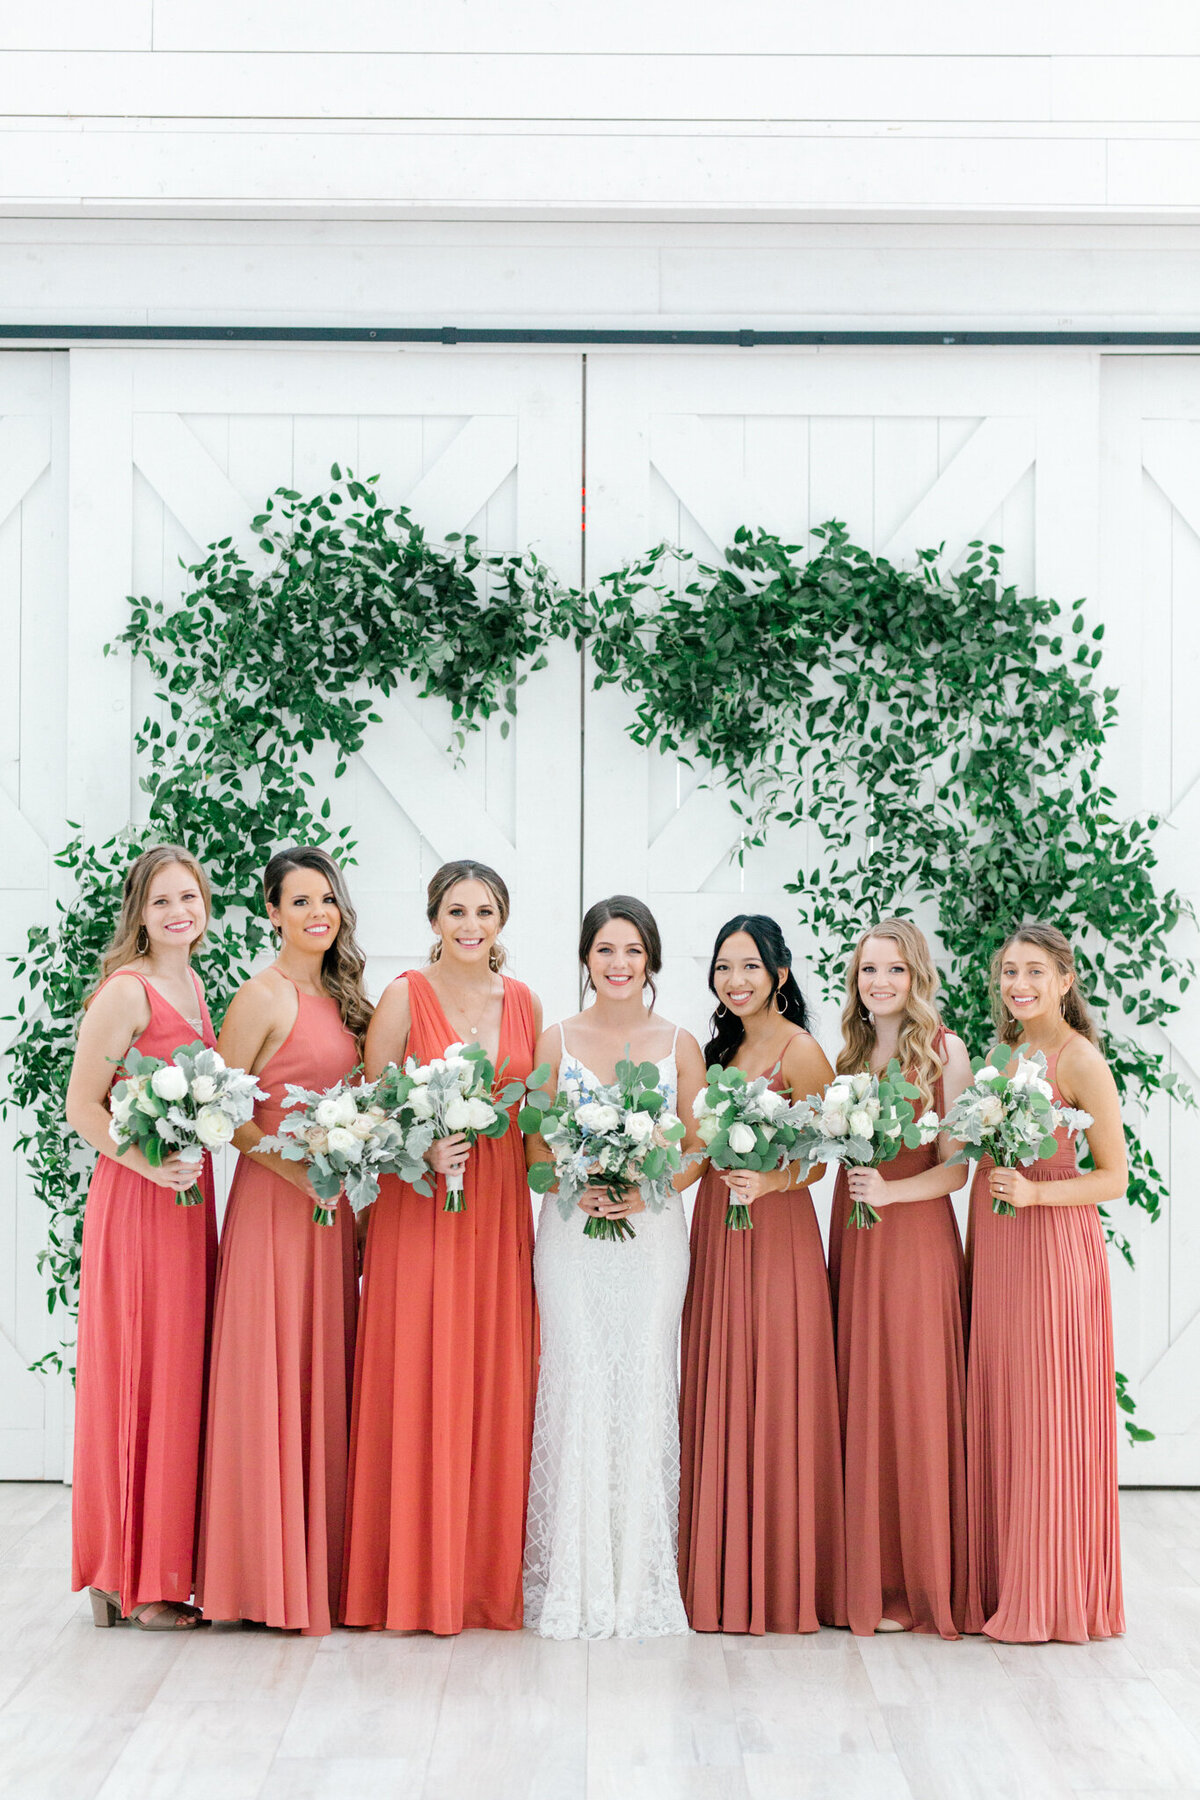 Anna & Billy's Wedding at The Nest at Ruth Farms | Dallas Wedding Photographer | Sami Kathryn Photography-123